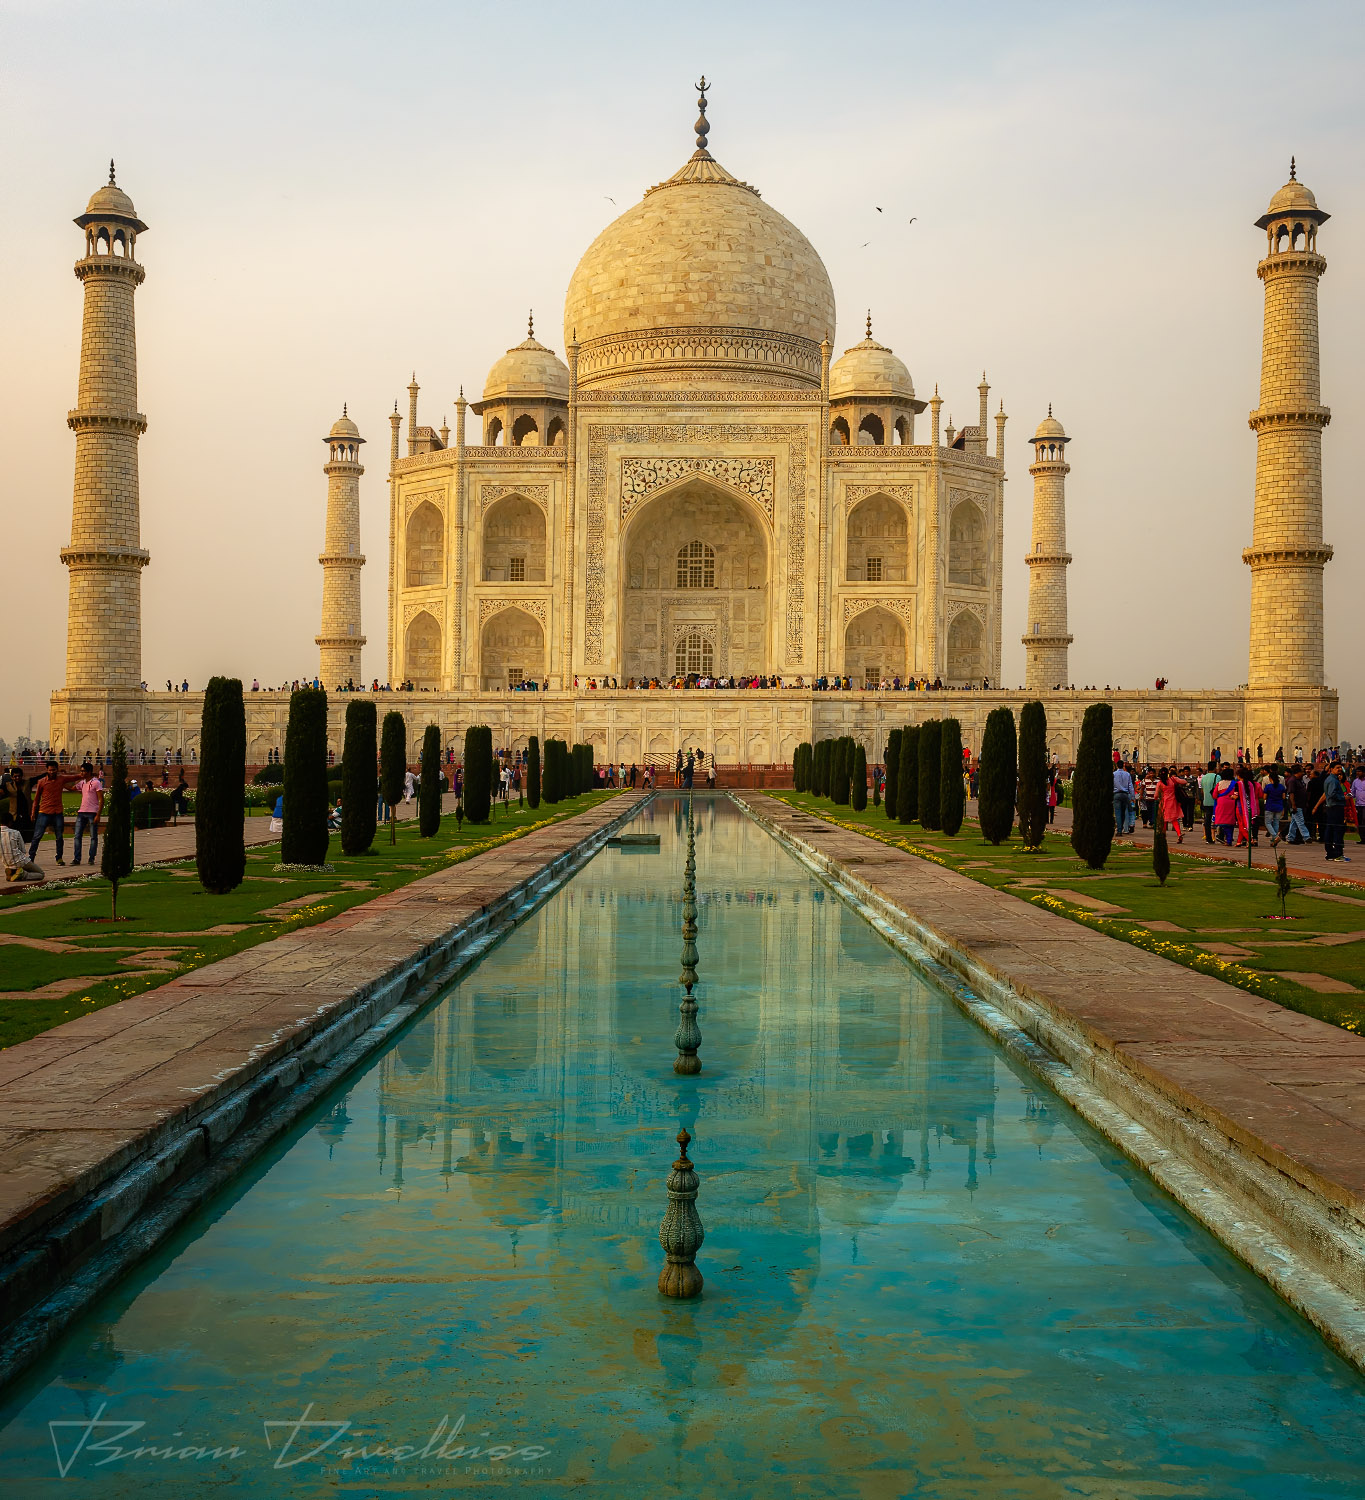 A frontal view of the Taj Mahal over the reflecting pool at dusk.